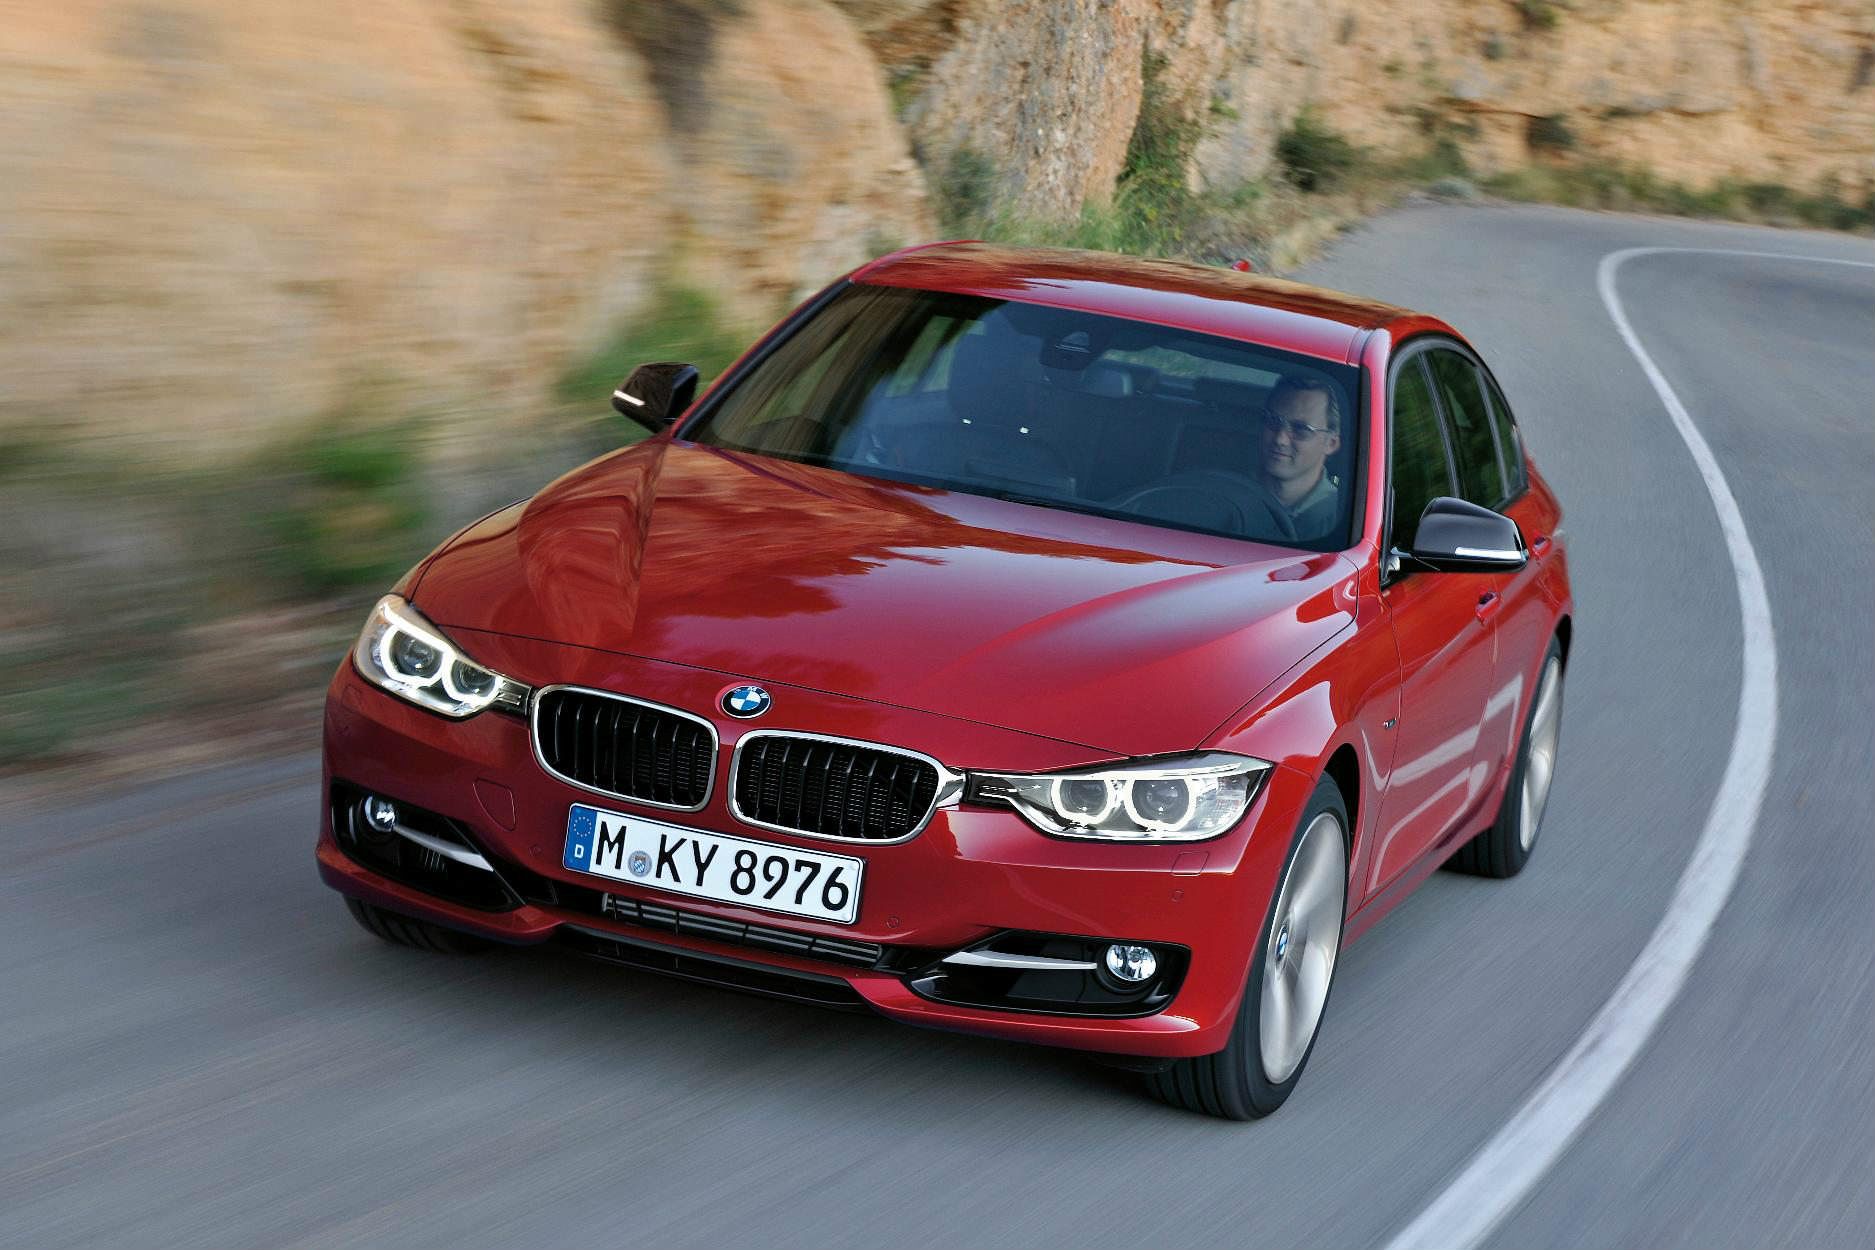 image of a red bmw 3 series car exterior